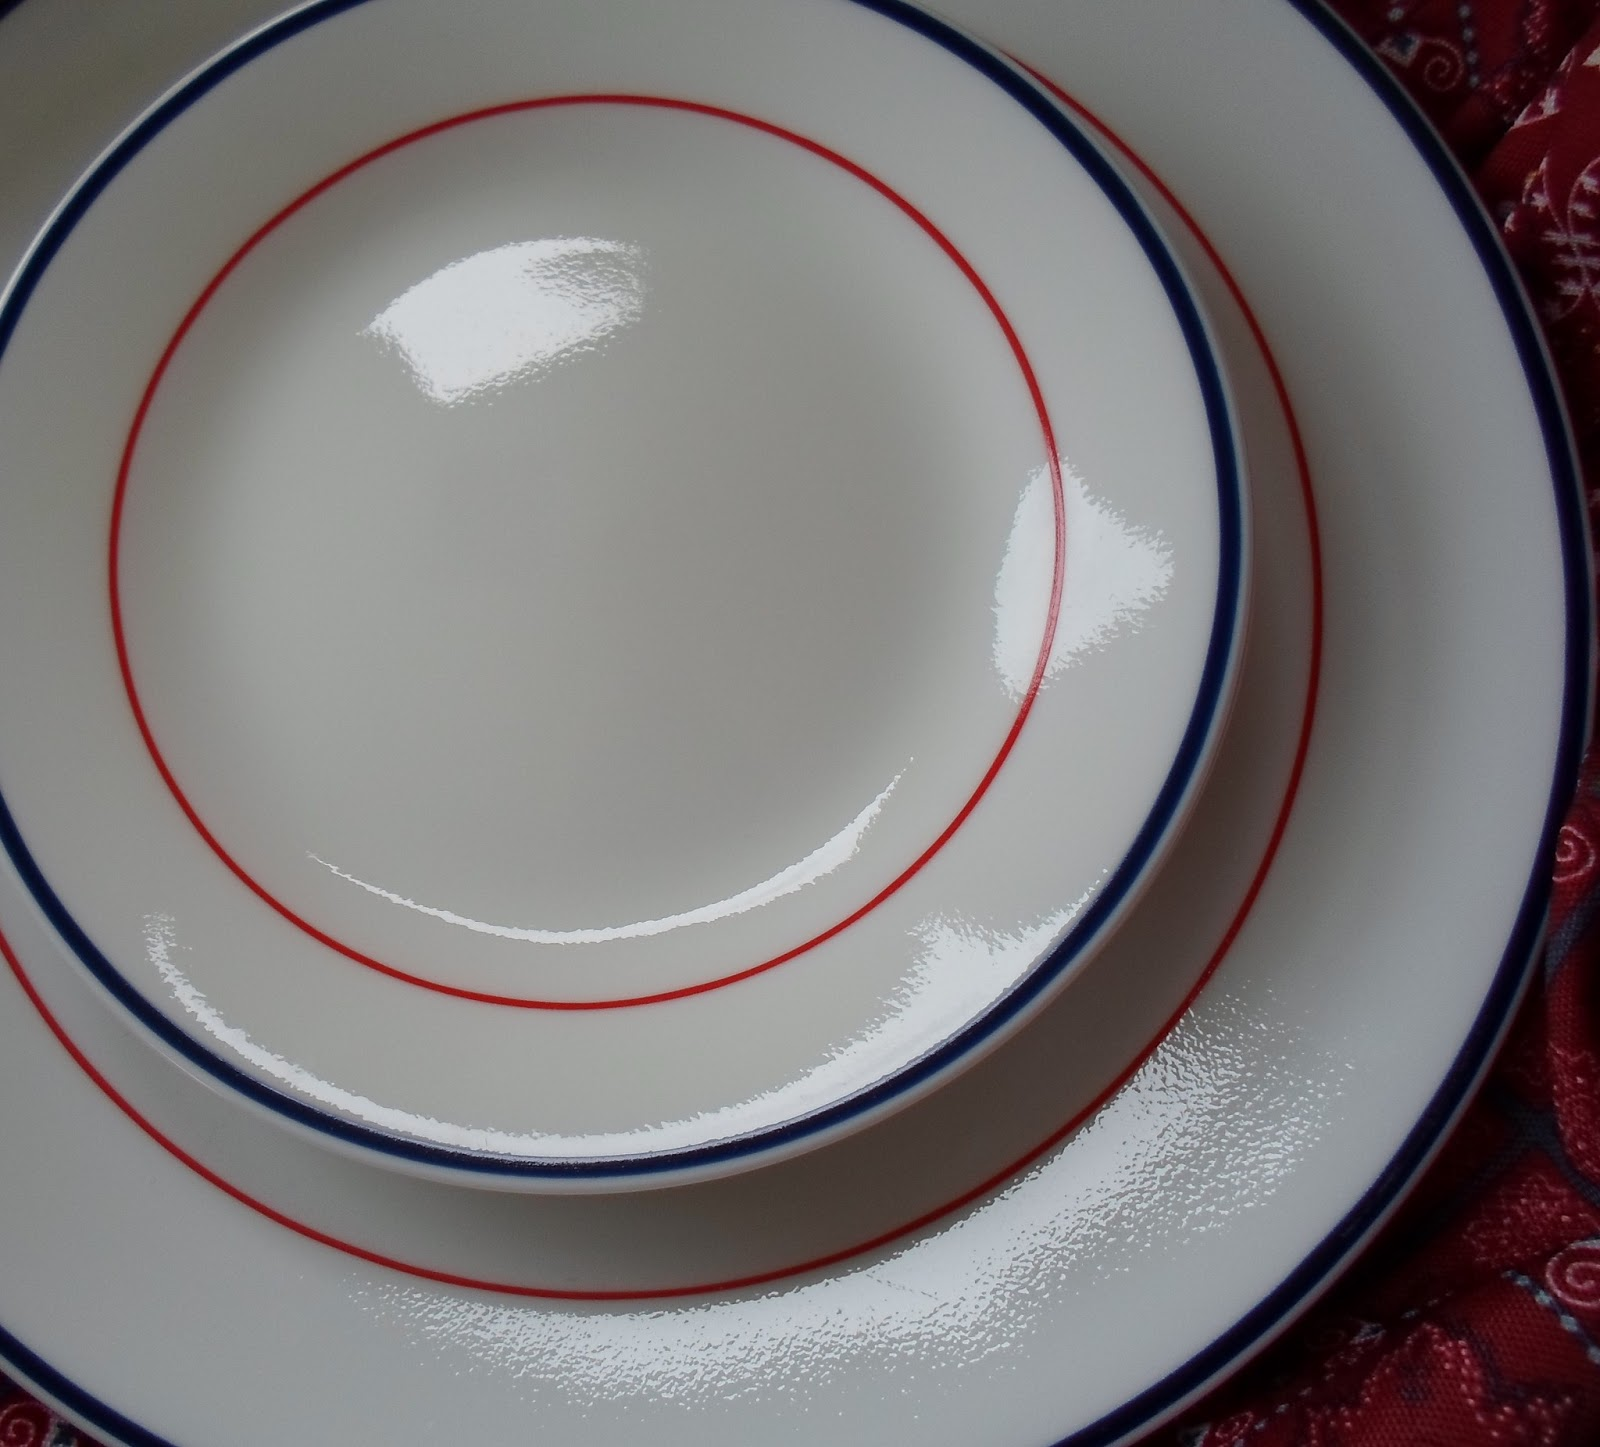 ... a set of 4 Corelle dinner plates and dessert plates with a red and blue border! They were $5 and will be my every day dishes from Memorial Day through ... & Happier Than A Pig In Mud: Went Junkin! Red White and Blue Corelle